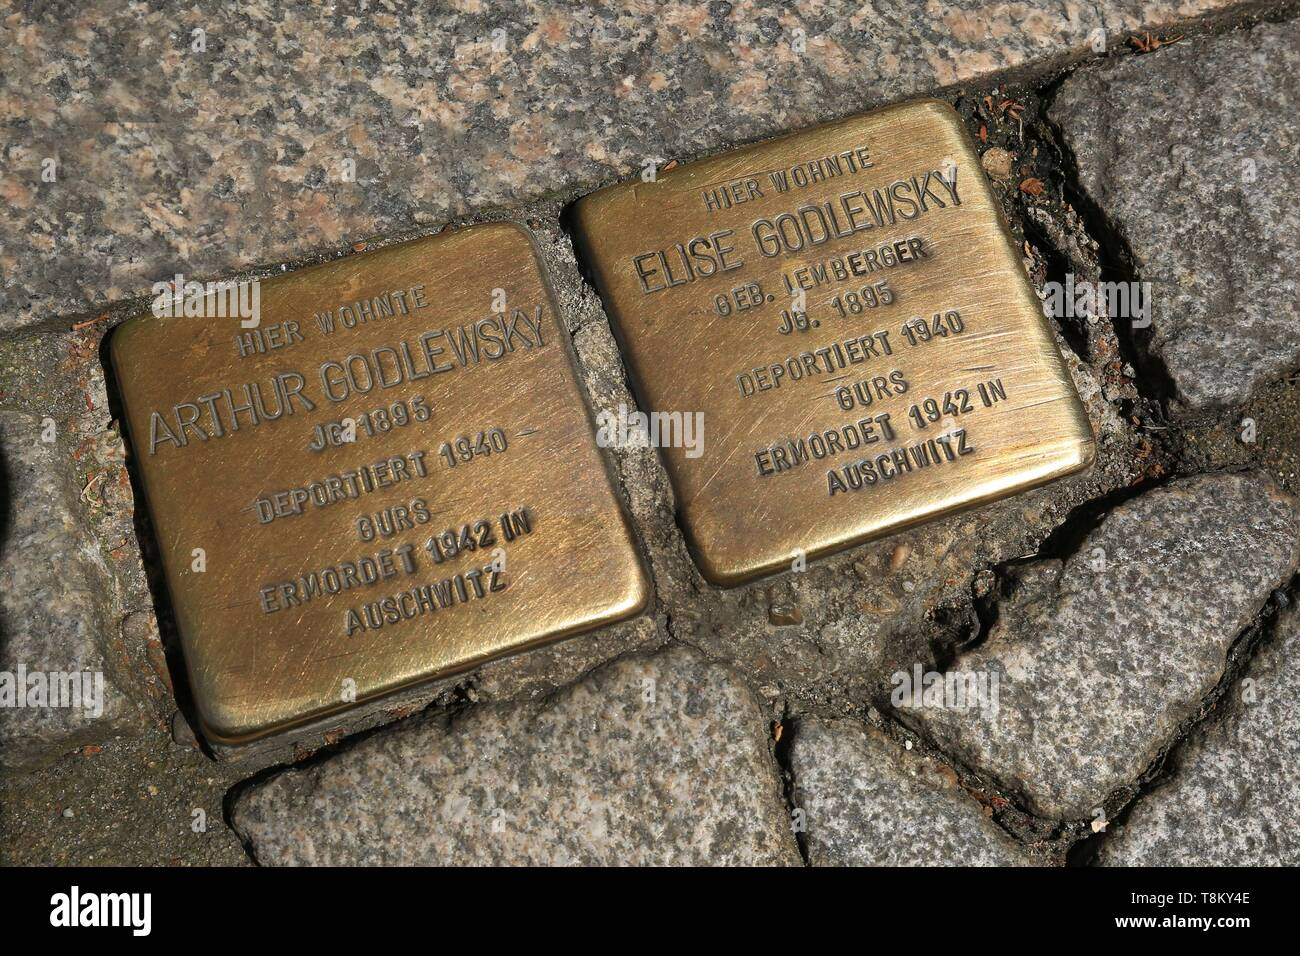 Germany, Baden Wurttemberg, Karlsruhe, Durlach, Durlach, small commemorative plaque in memory of Jewish deportees.They are placed at the address where the deportees lived - Stock Image